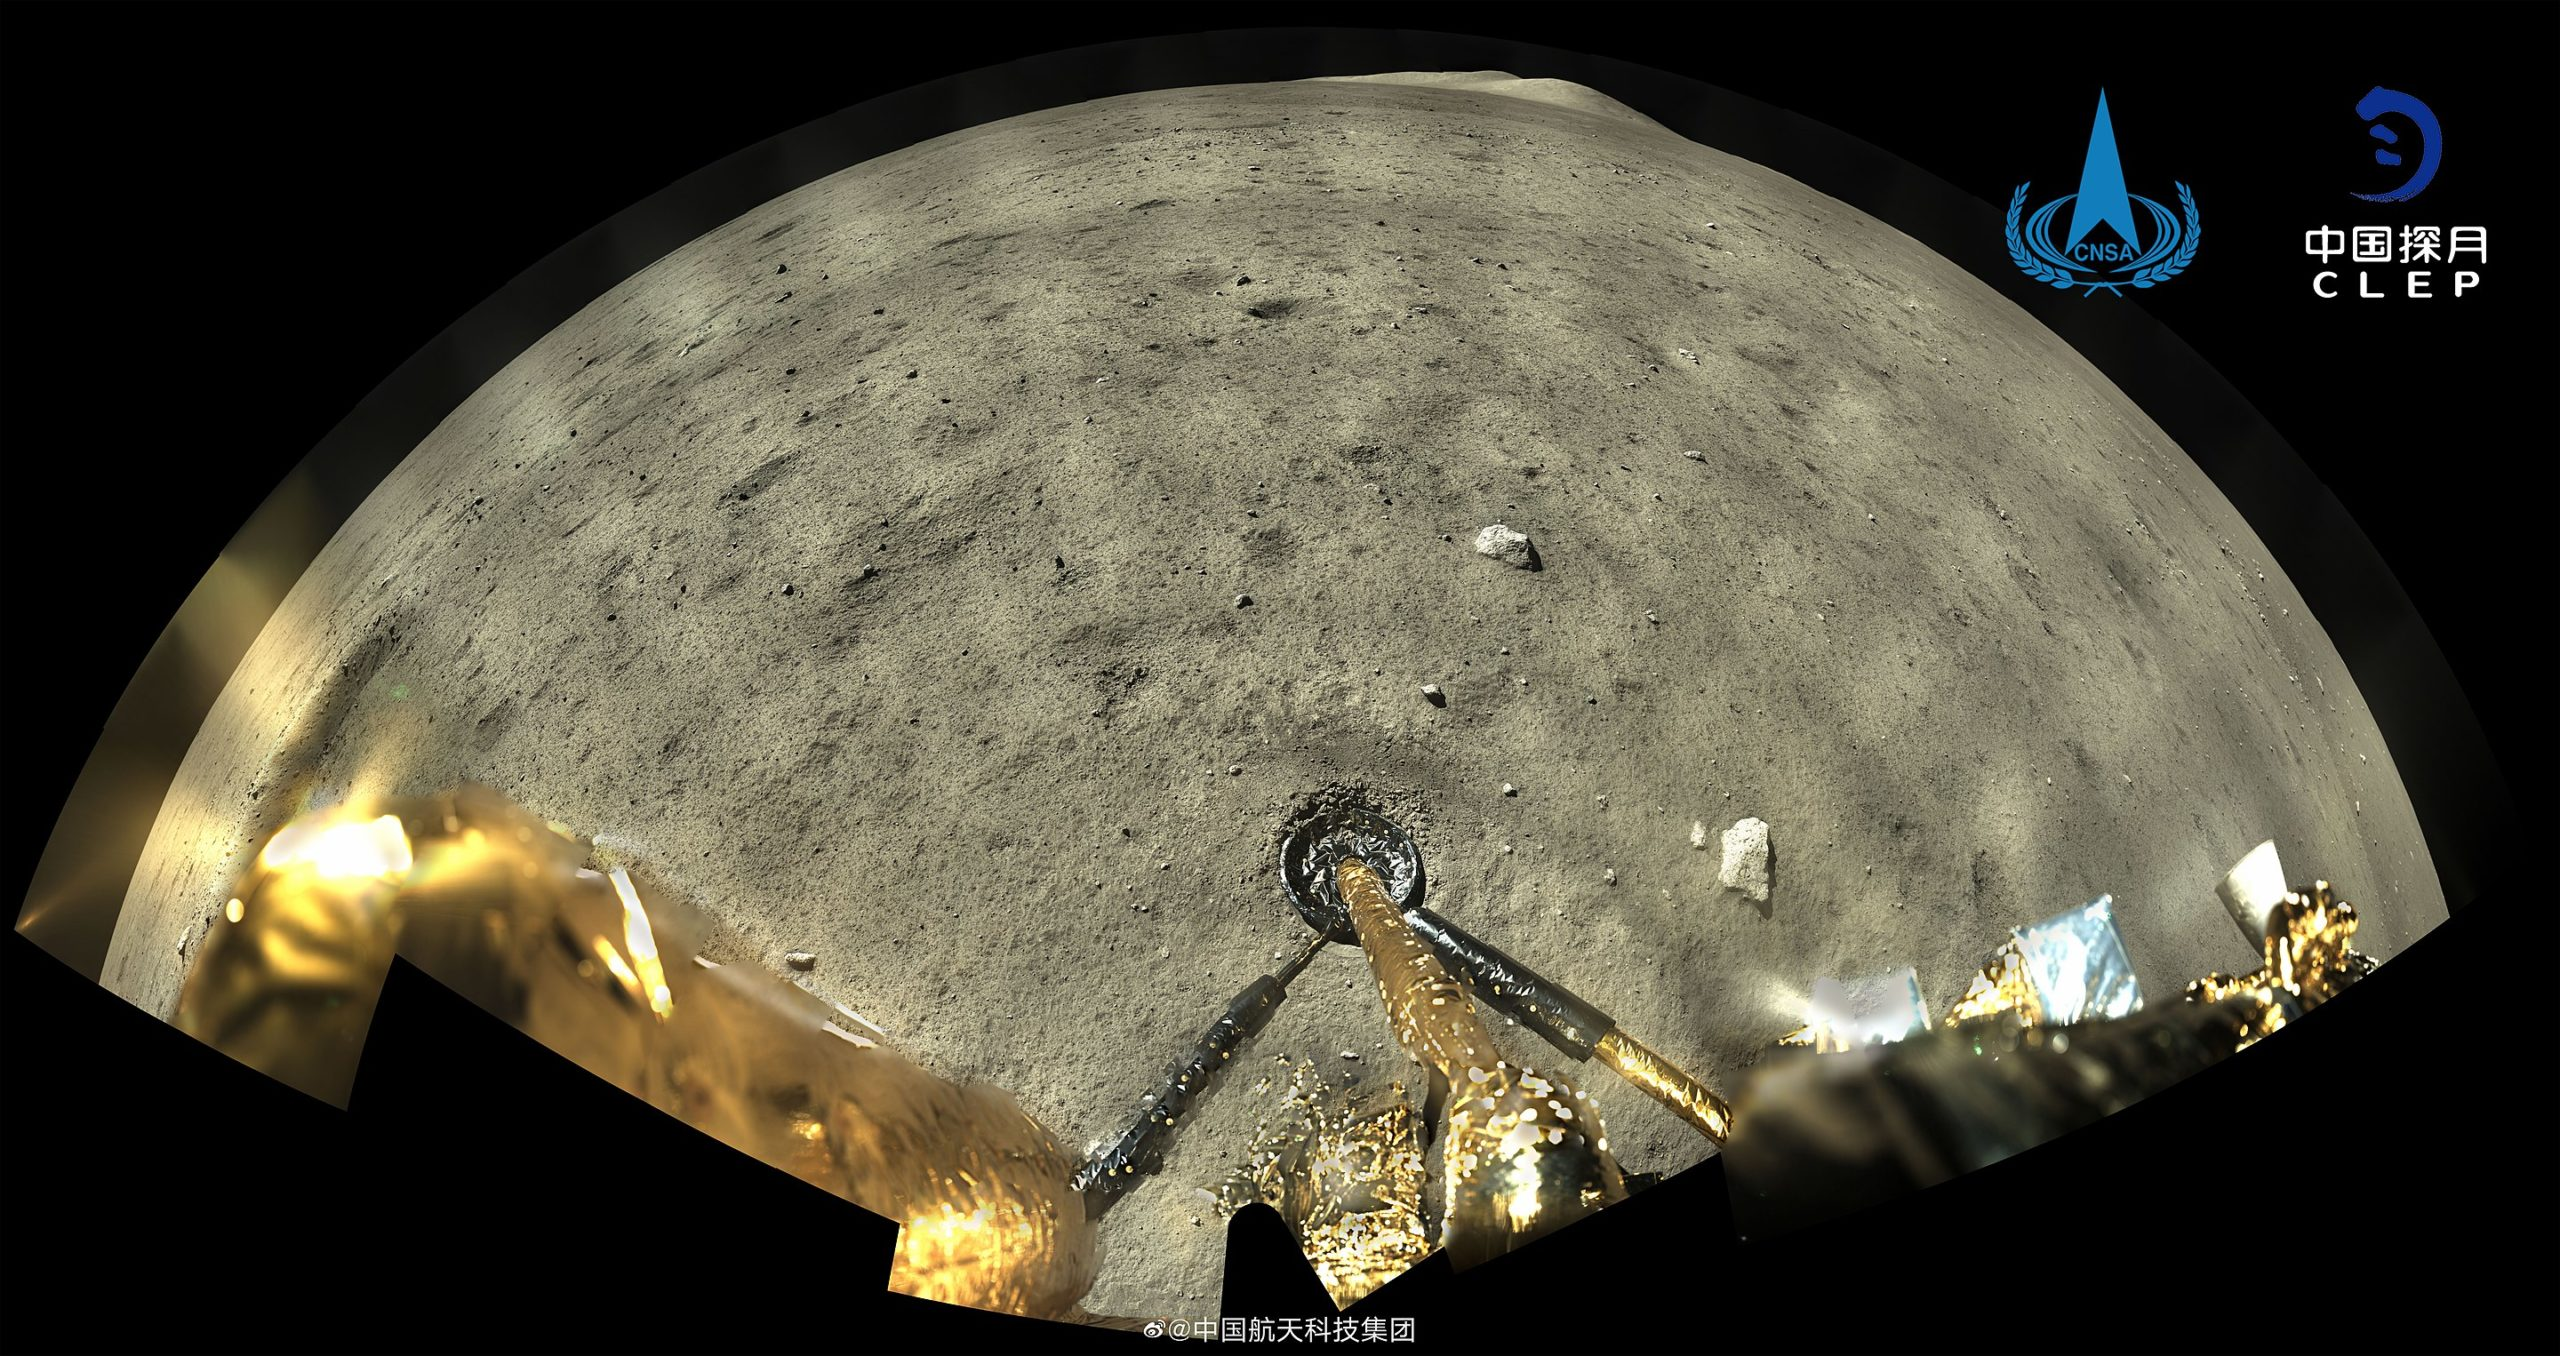 China Change'5 Probe Lands on Moon to Start 1st Sample Return in Decades